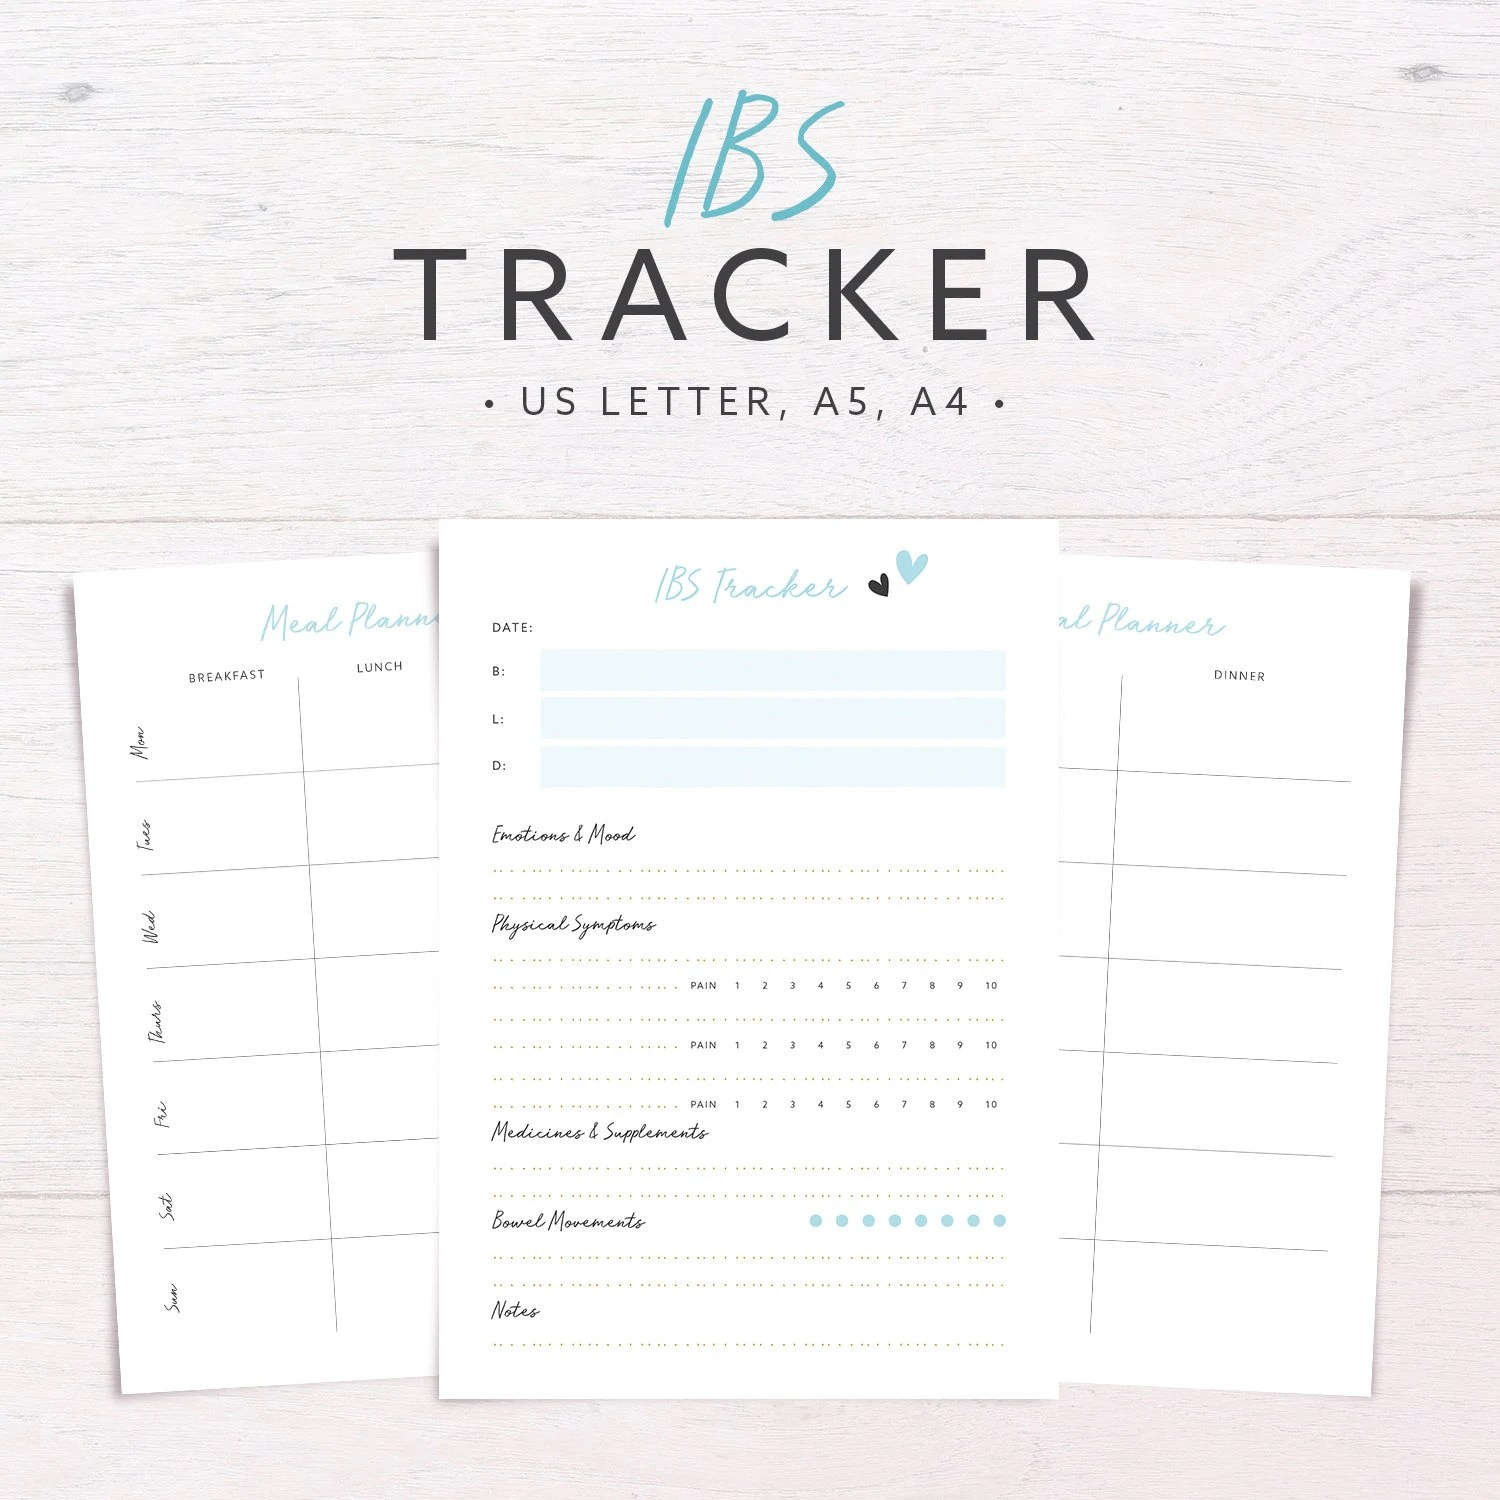 IBS Tracker Food Diary Allergy Diet Tracker Meal